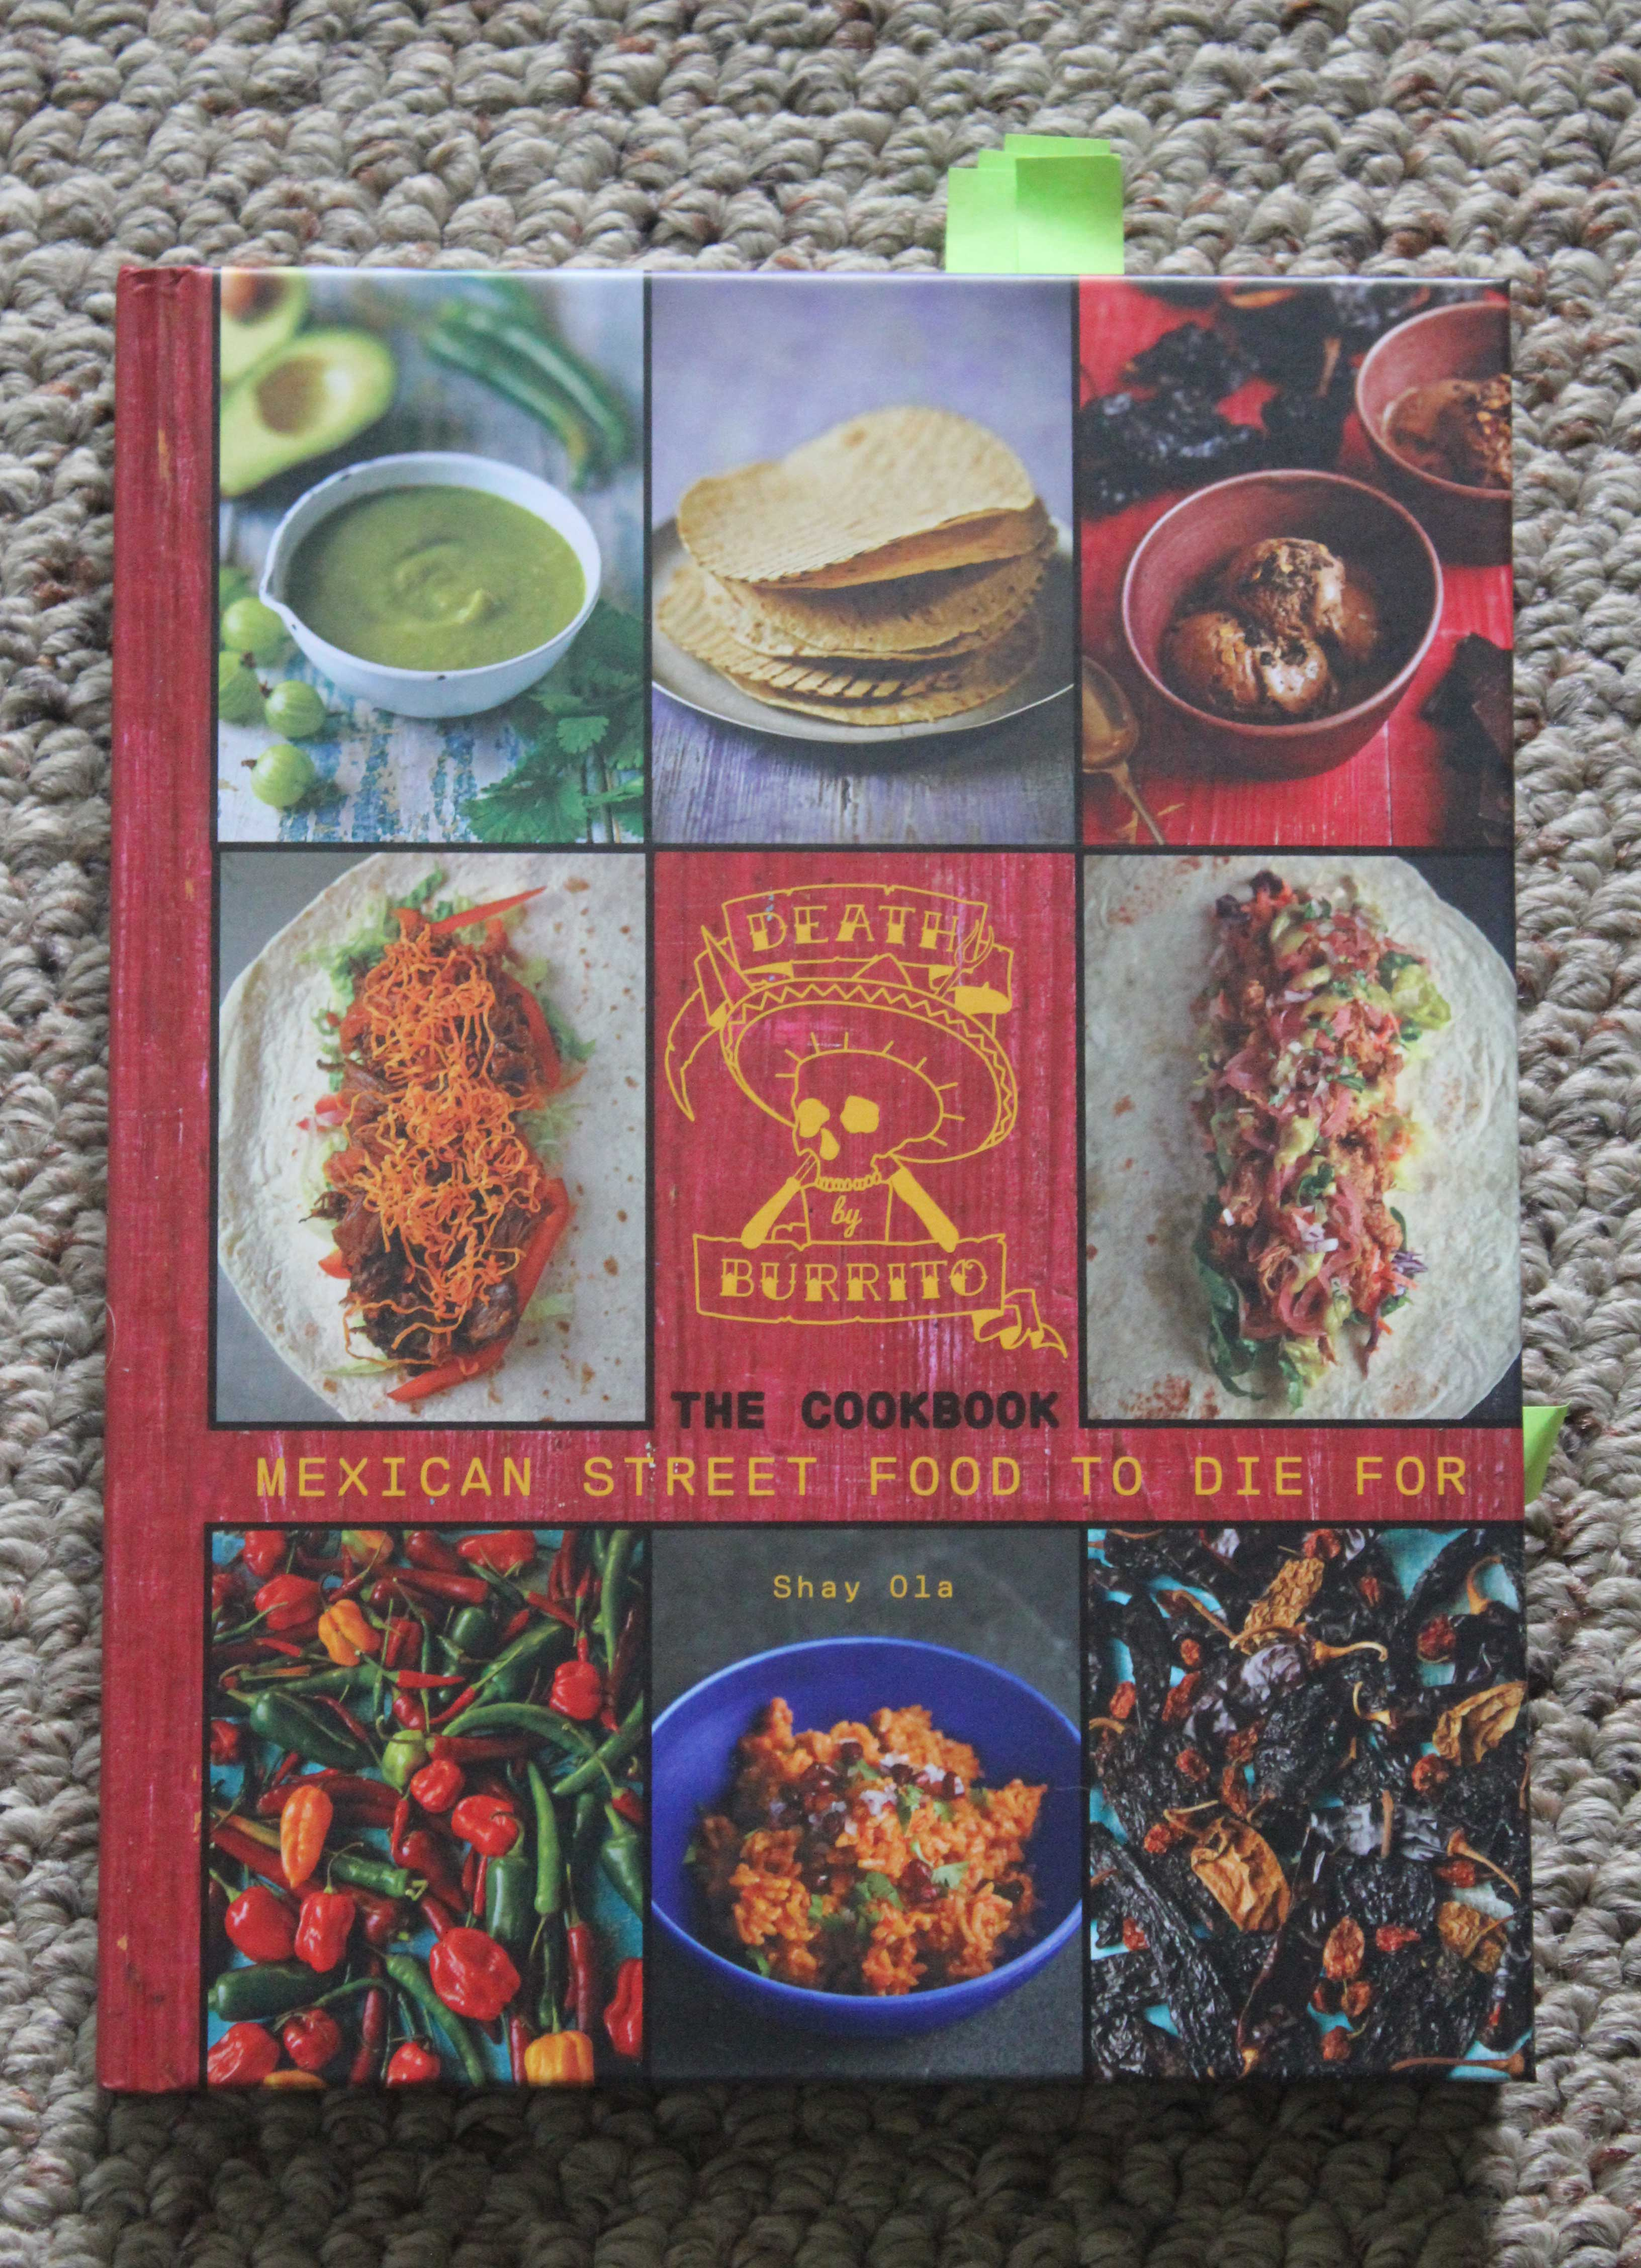 Fiery Cookbook Review: Death by Burrito